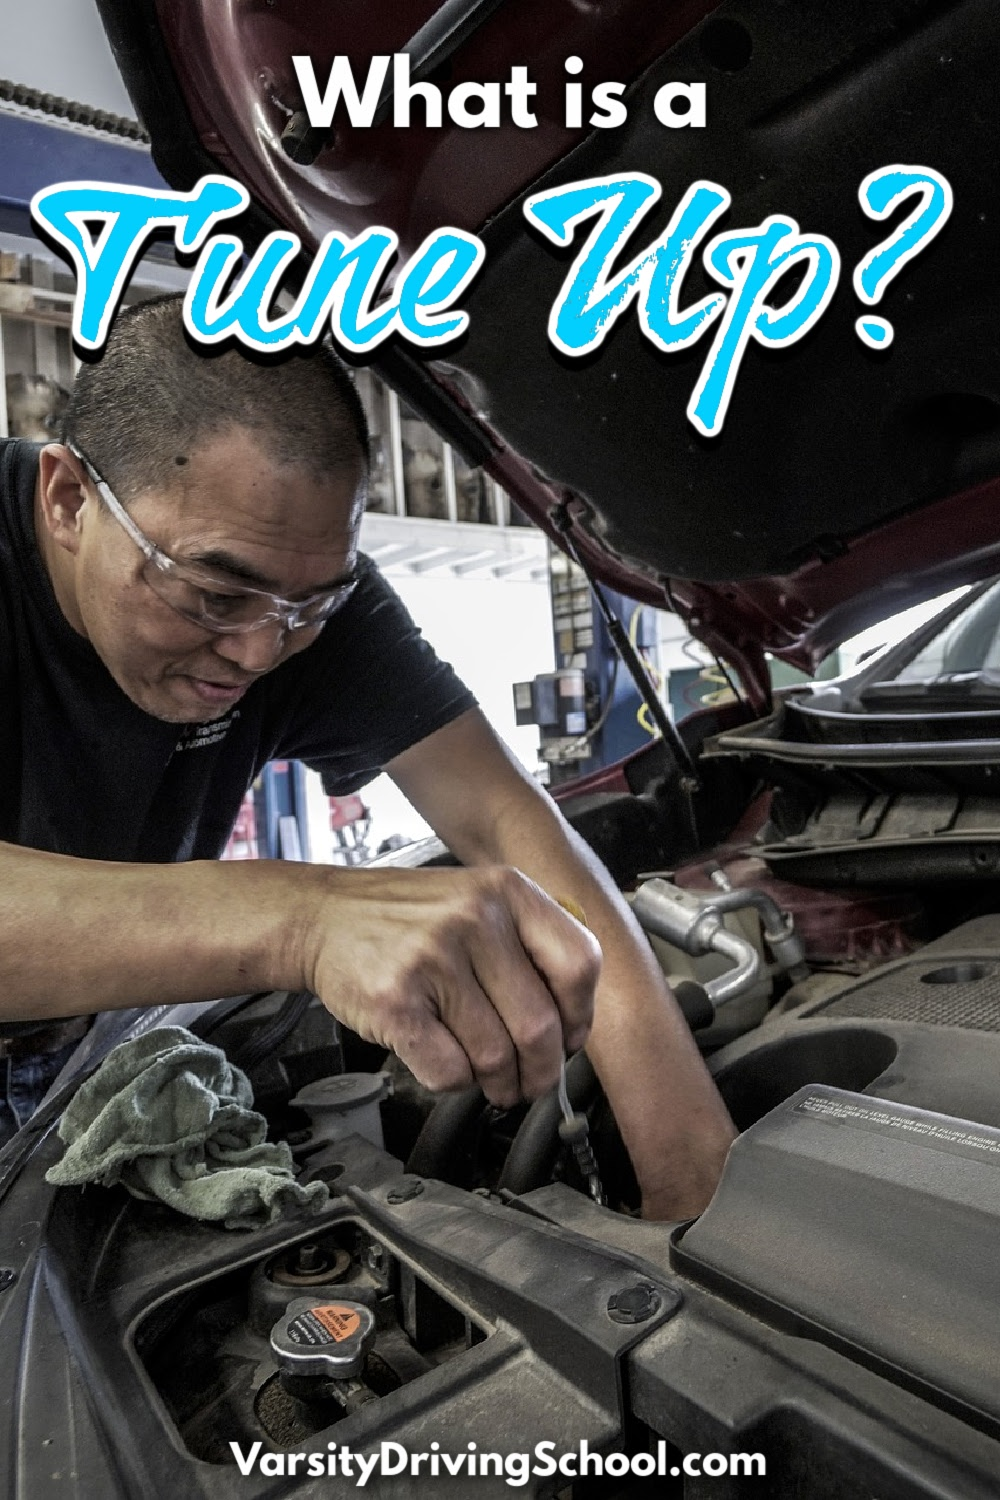 Asking what is a car tune up is a good thing, it means you want to learn about how to care for your car which is the responsible thing to do.